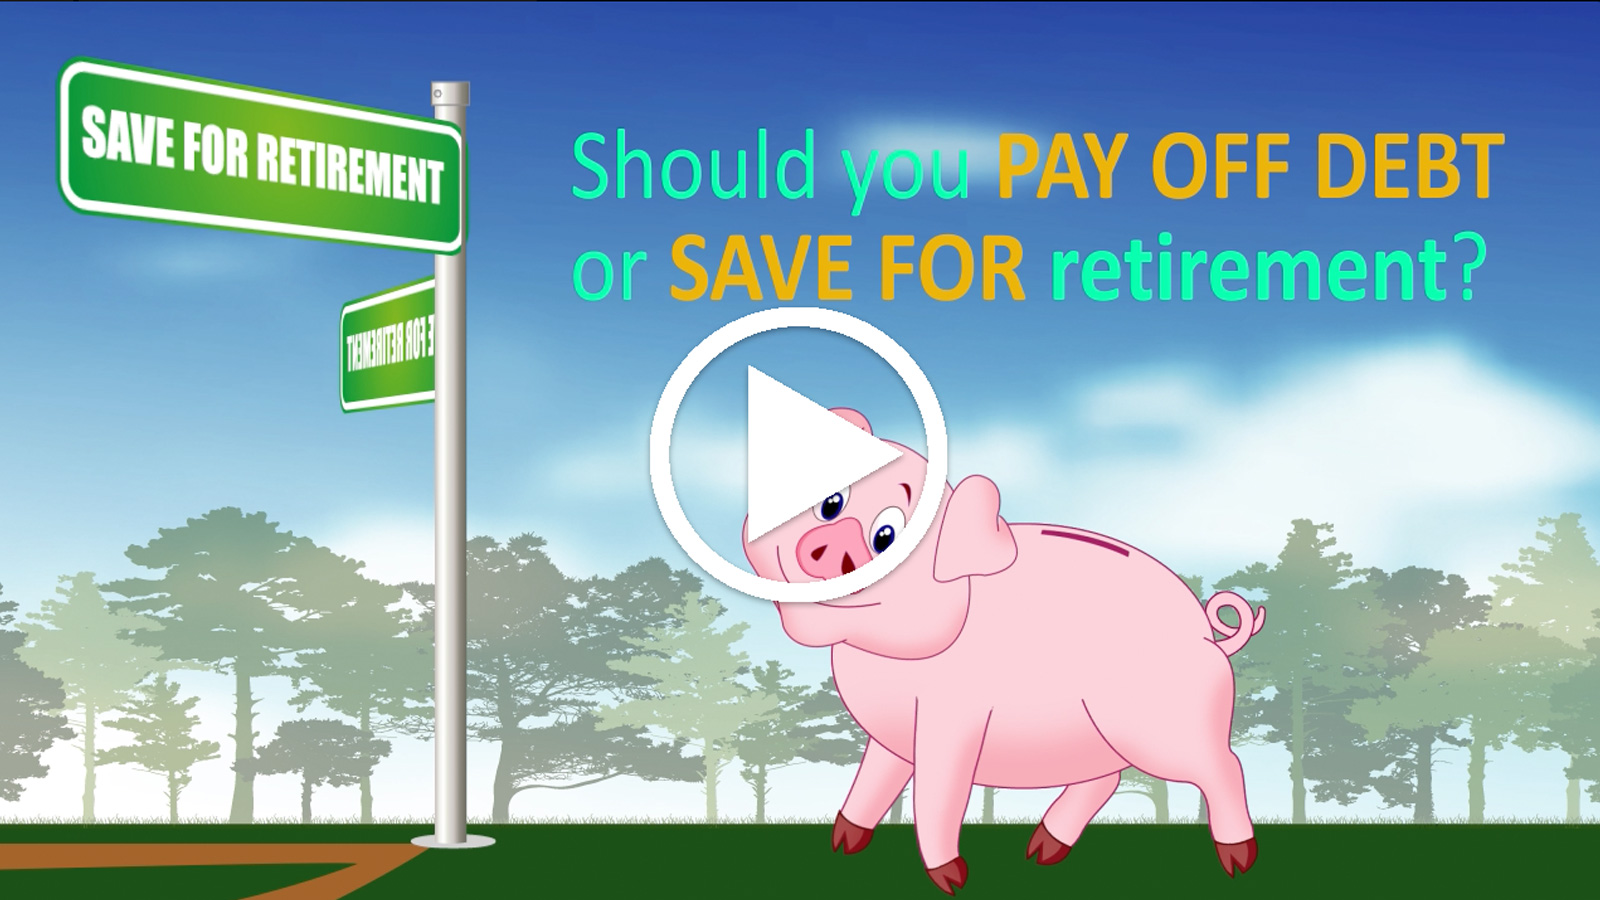 Should You Pay Off Debt or Save for Retirement?